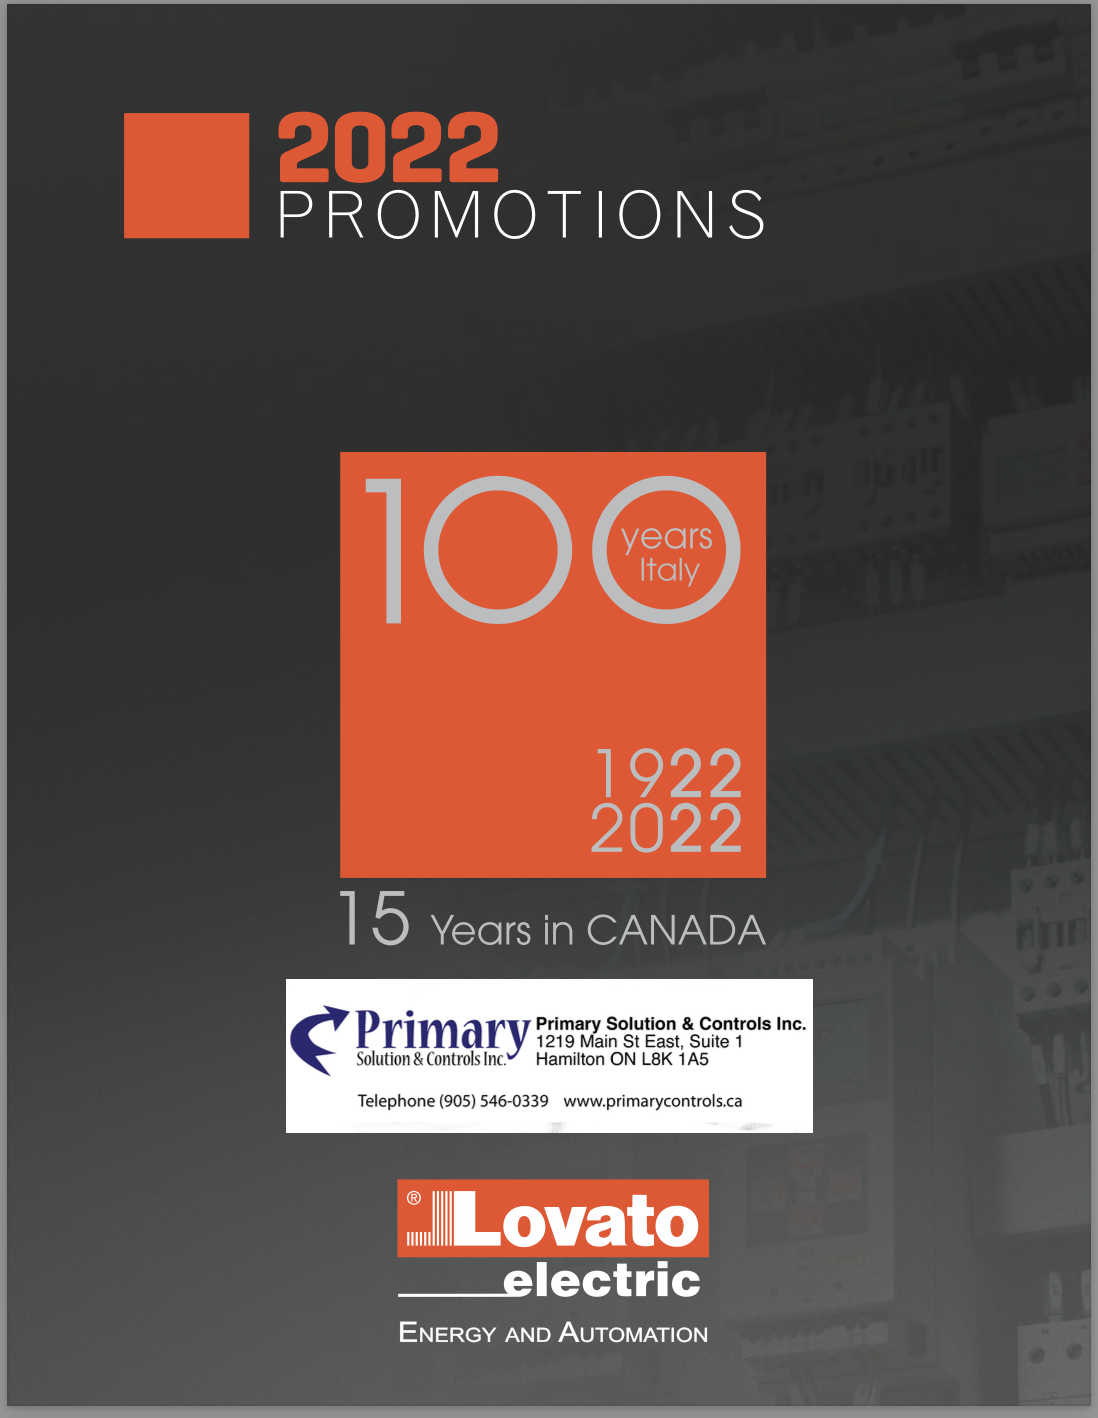 Primary Solution & Controls Inc  | Quality Automation